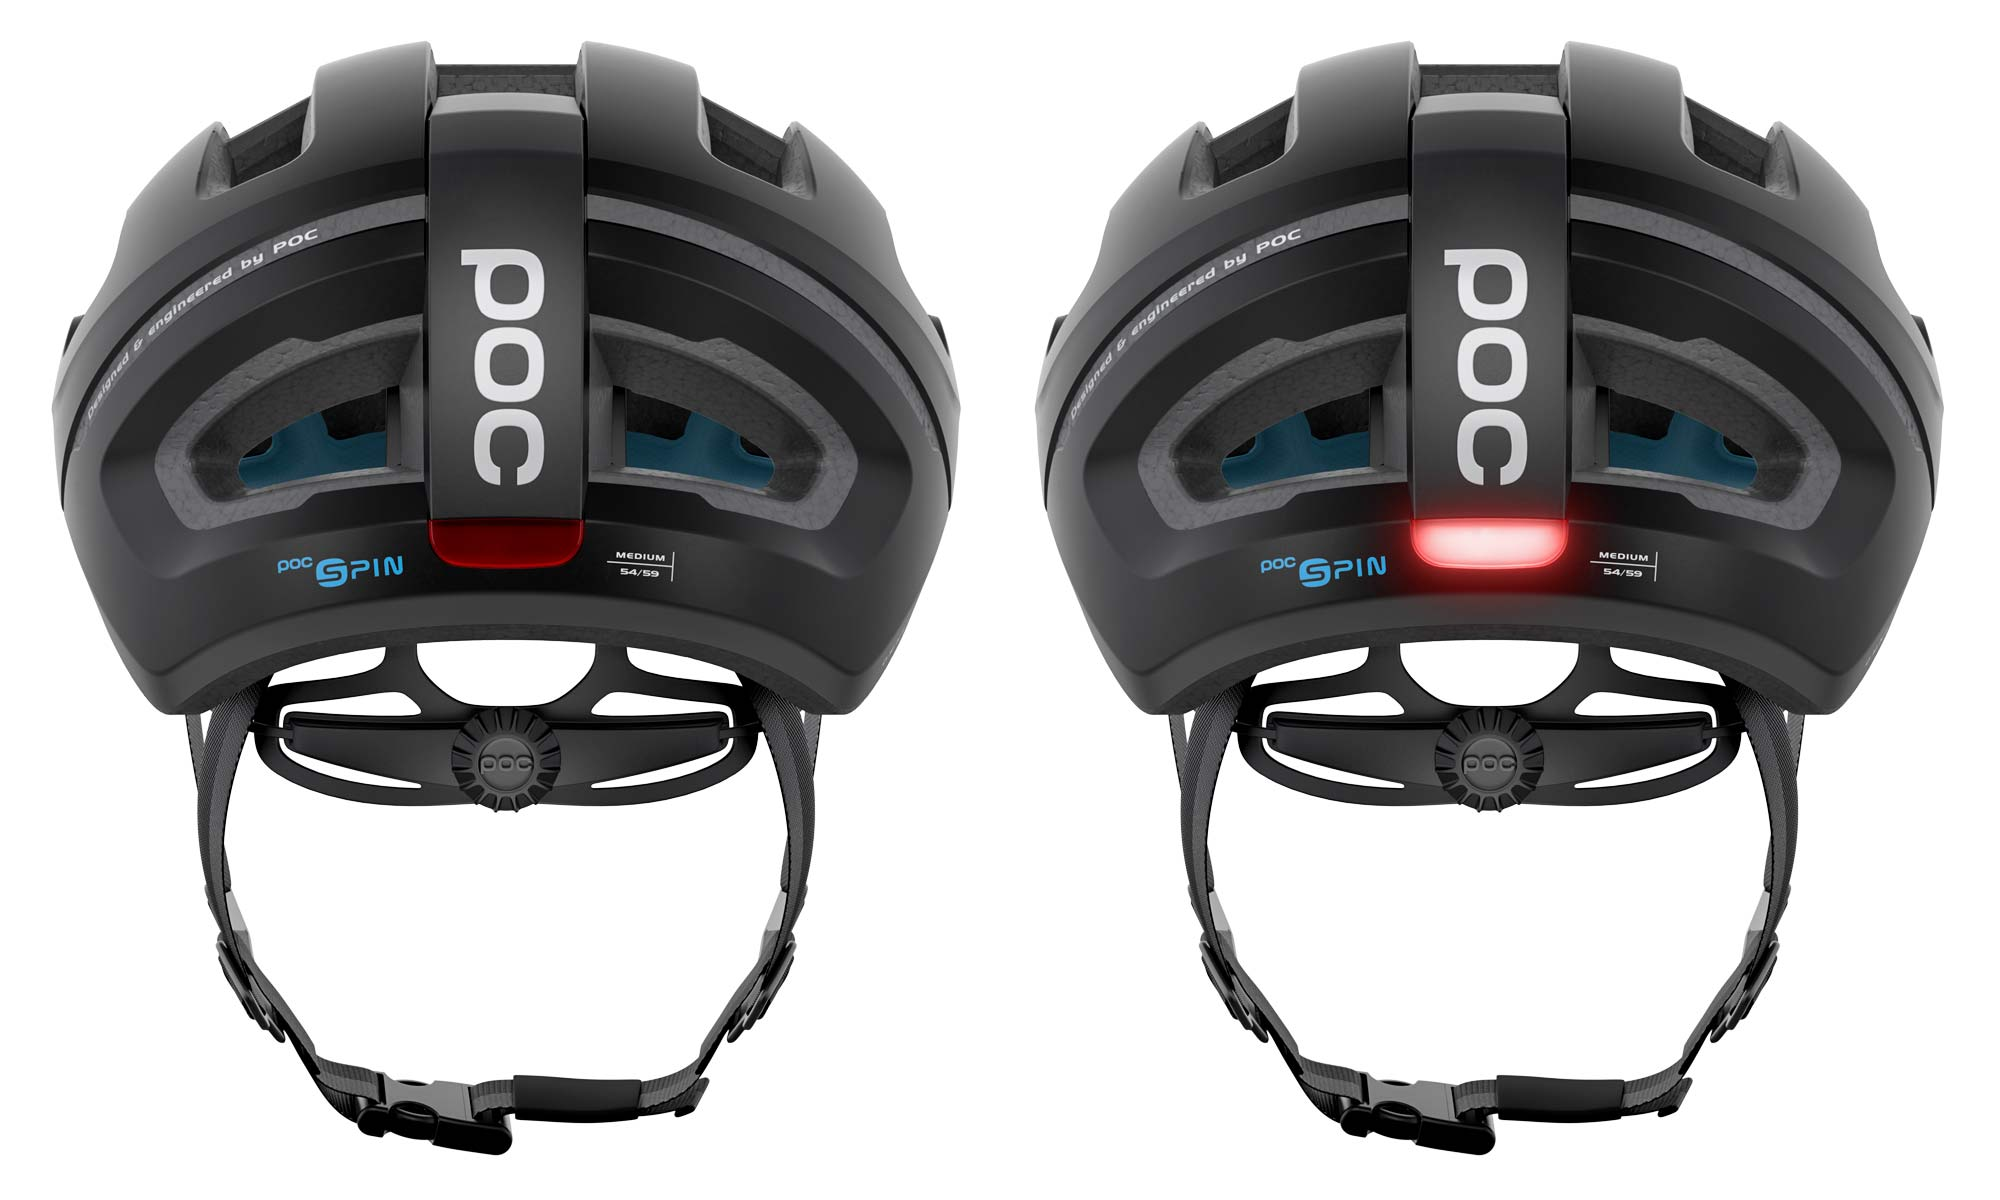 POC Omne Eternal solar-powered helmet with integrated lighting, automatic off & on